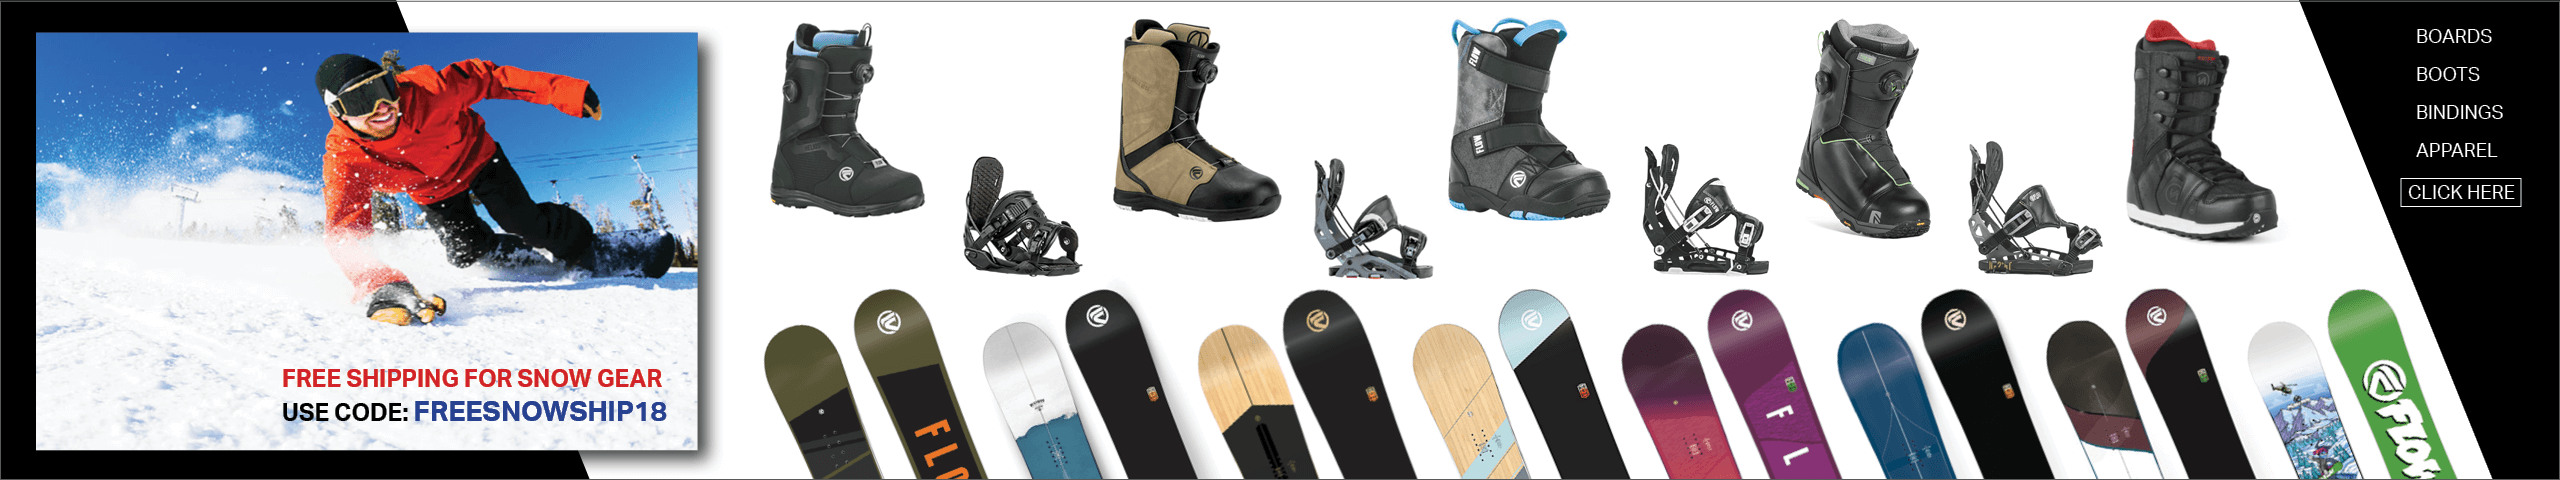 Snow bindings, snowboards, boots, apparel